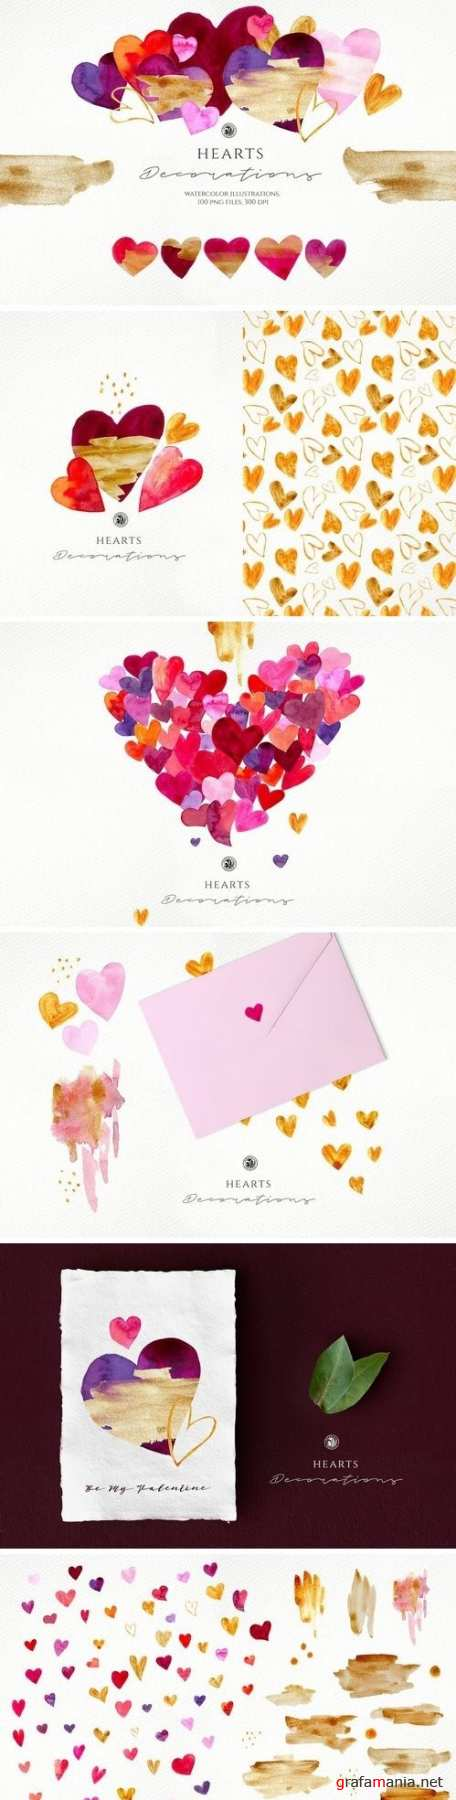 CM - Hearts - watercolor illustrations 3221567